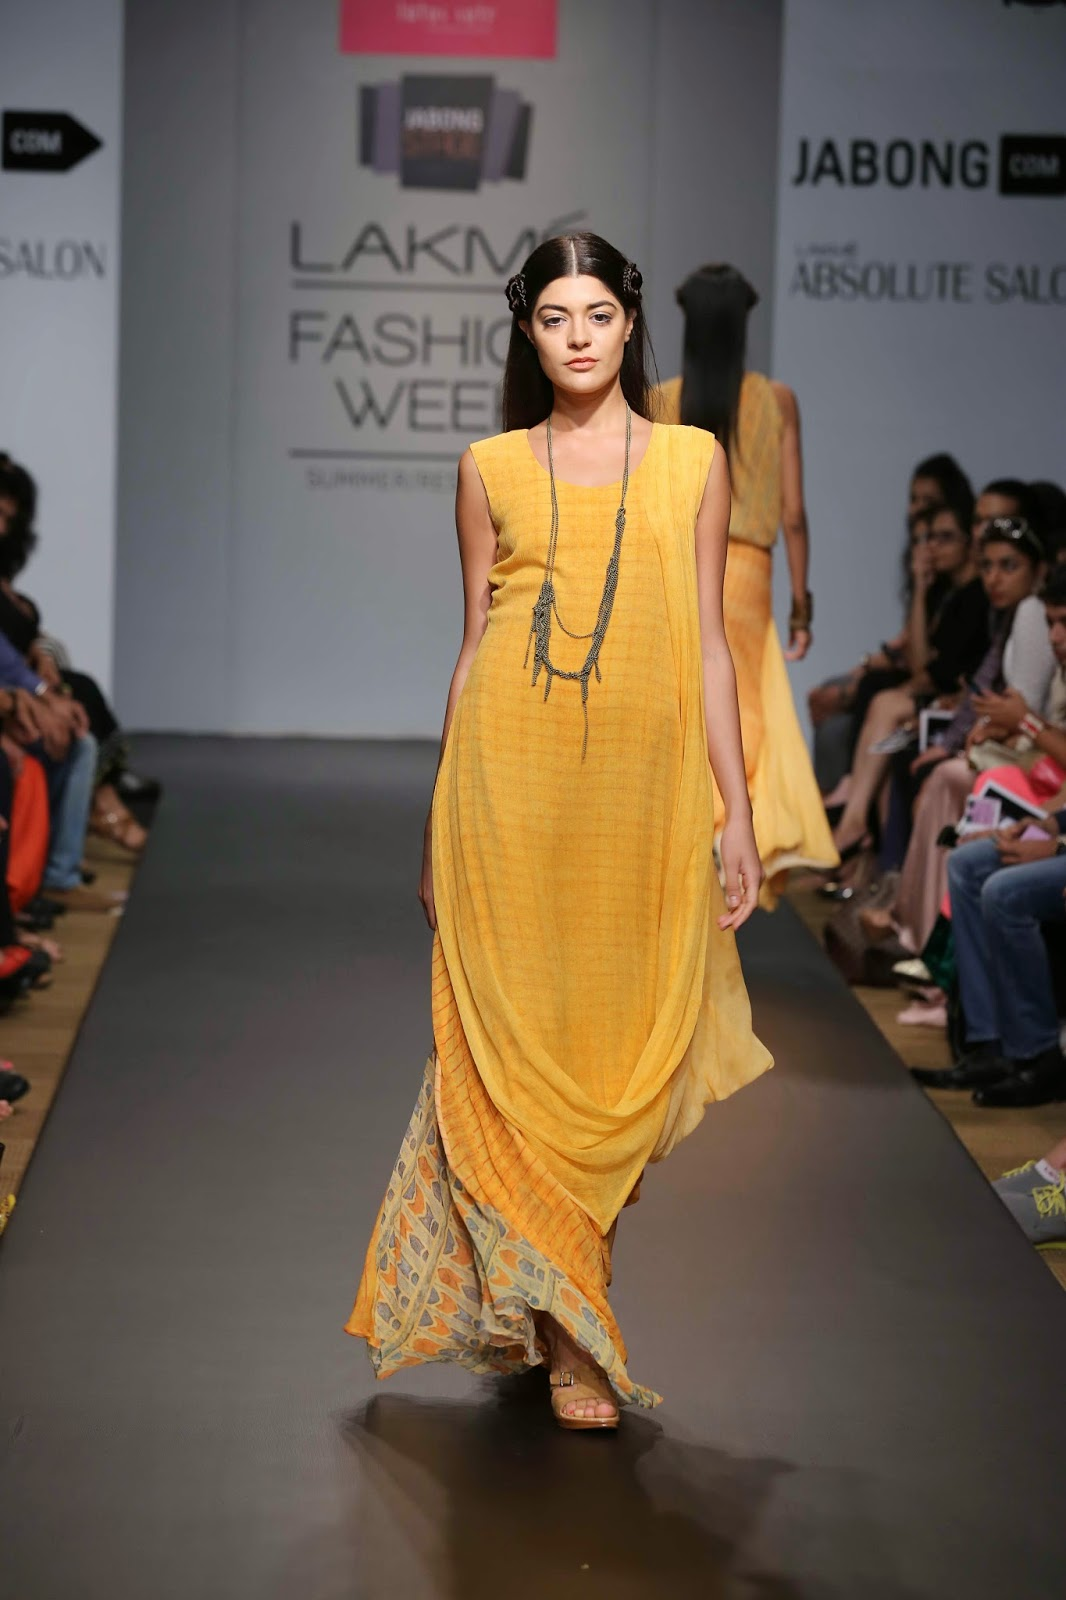 Karishma Jamwal under her 'Lotus Sutr' showcased an elegant, ethereal range inspired by Egyptian and Persian aesthetics and culture at Jabong Stage during Lakmé Fashion Week Summer/Resort 2014.